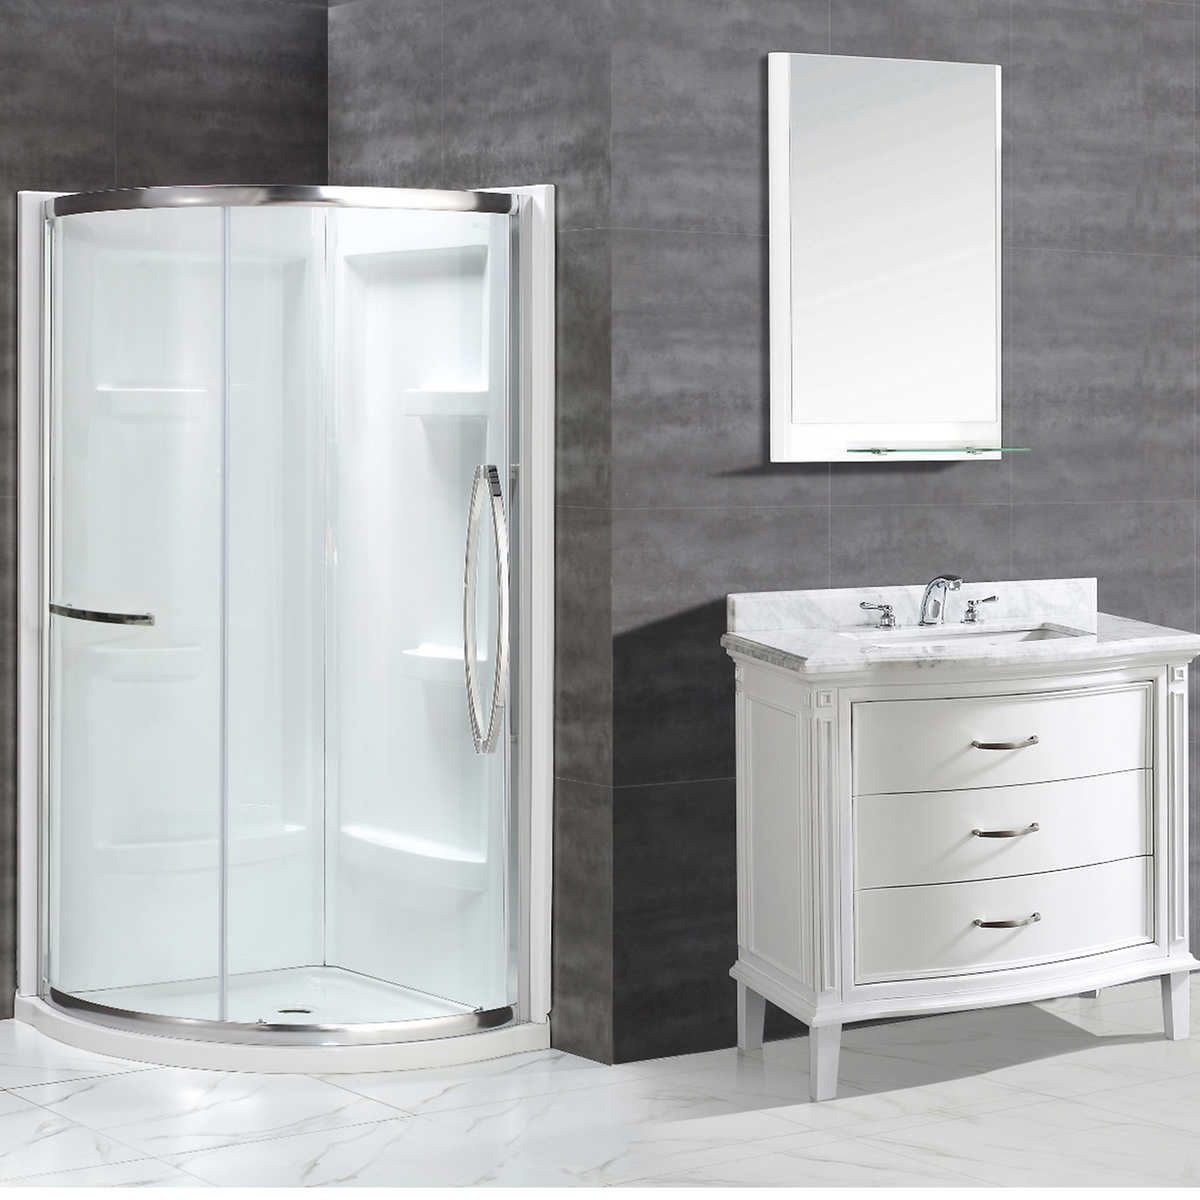 100 fixed bath shower screens help and advice for frameless fixed bath shower screens showers costco